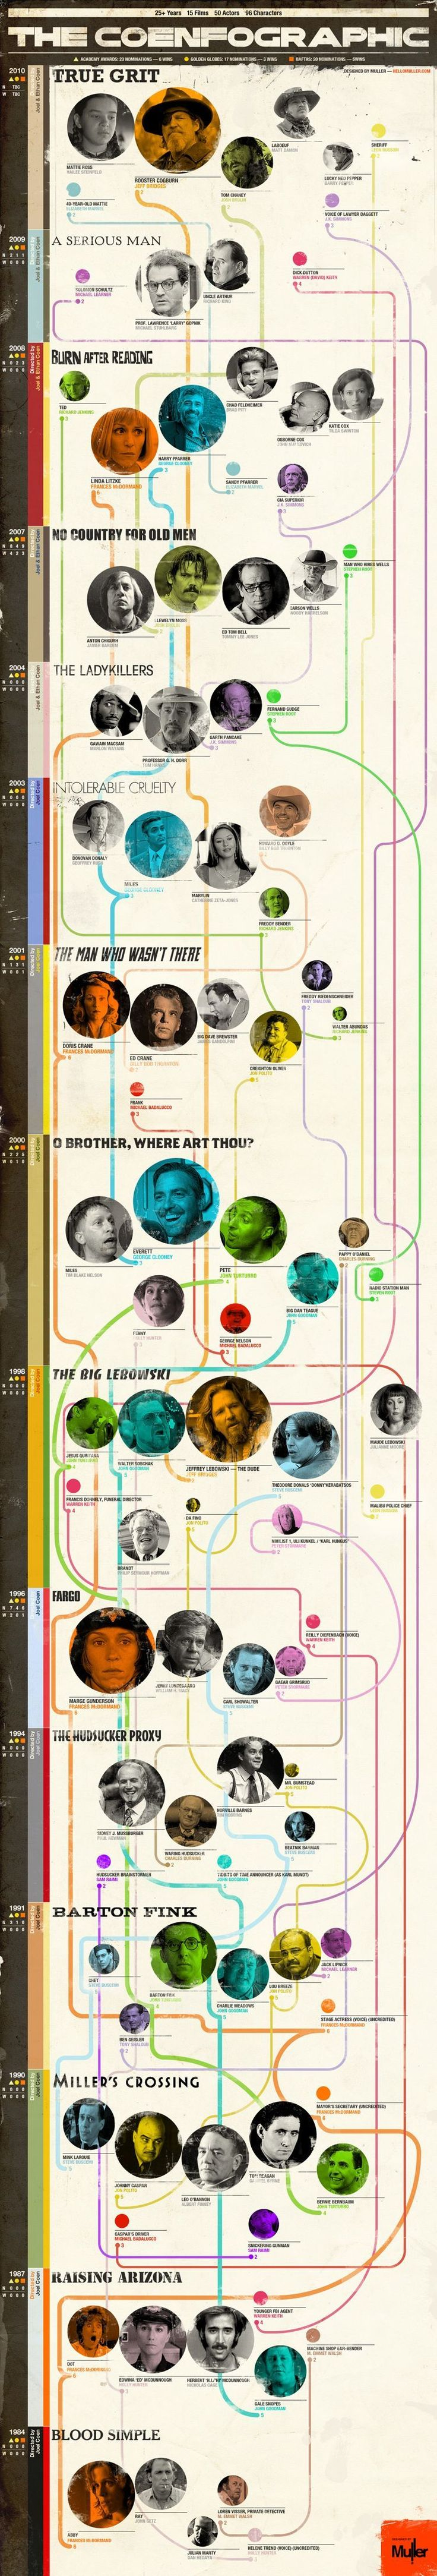 Coen Brothers Infographic: 25+ years, 15 films, 50 actors, 96 characters